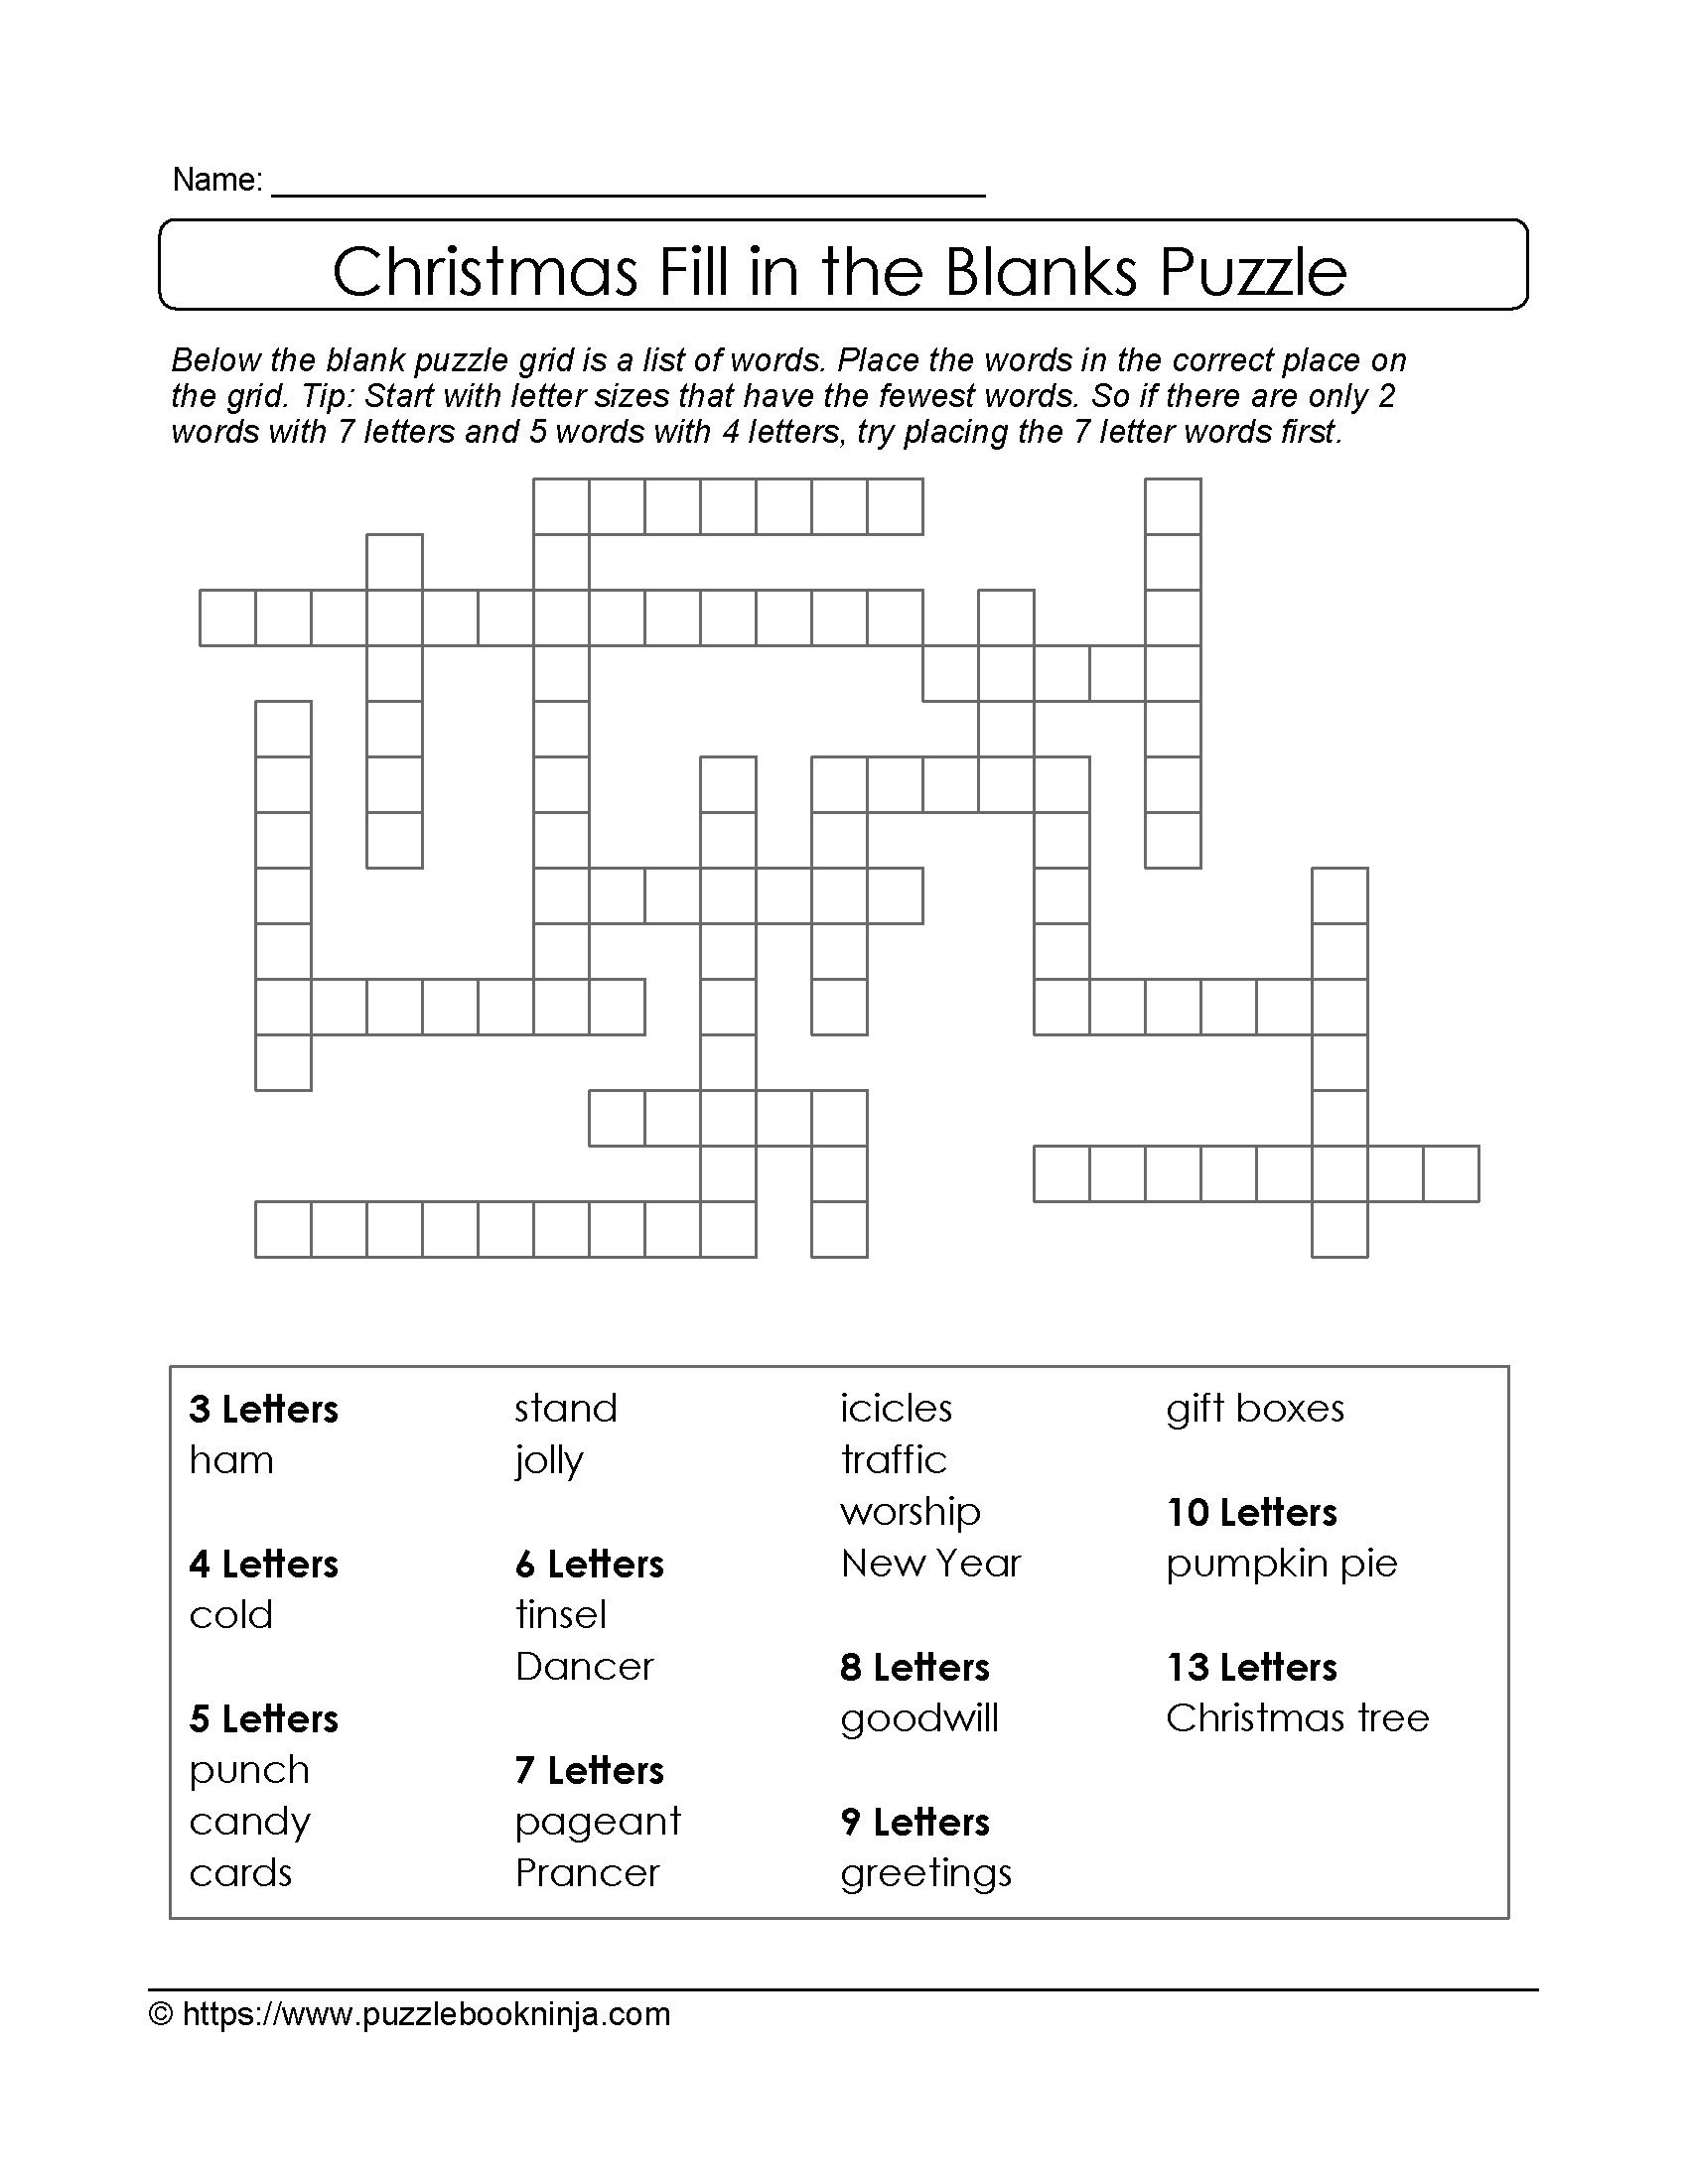 Freebie Xmas Puzzle To Print. Fill In The Blanks Crossword Like - Printable Blank Crossword Puzzle Grid